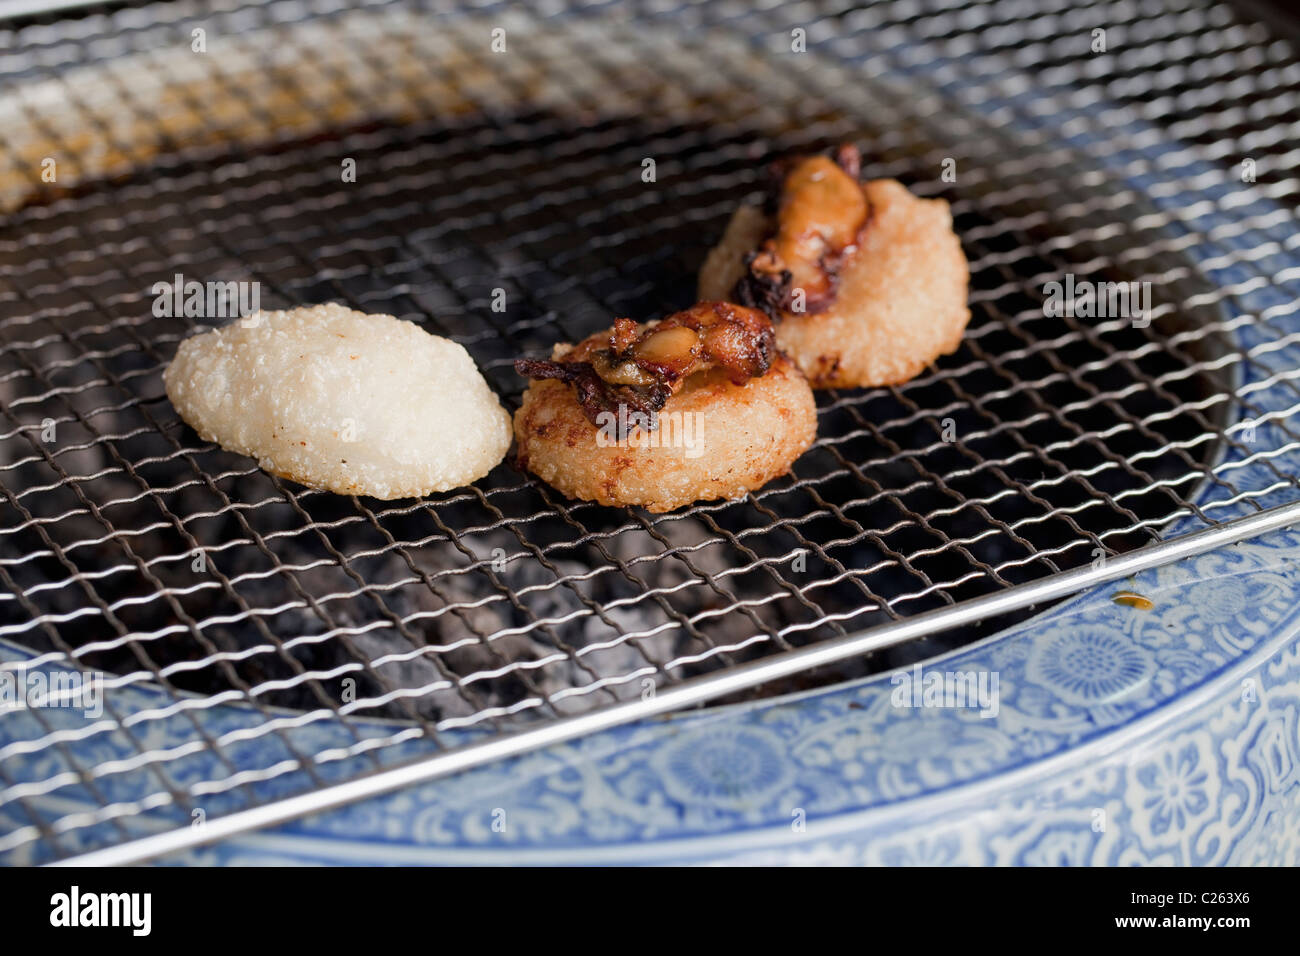 Rice balls topped with seafood grilling over charcoal in ceramic container, Miyajima, Japan - Stock Image